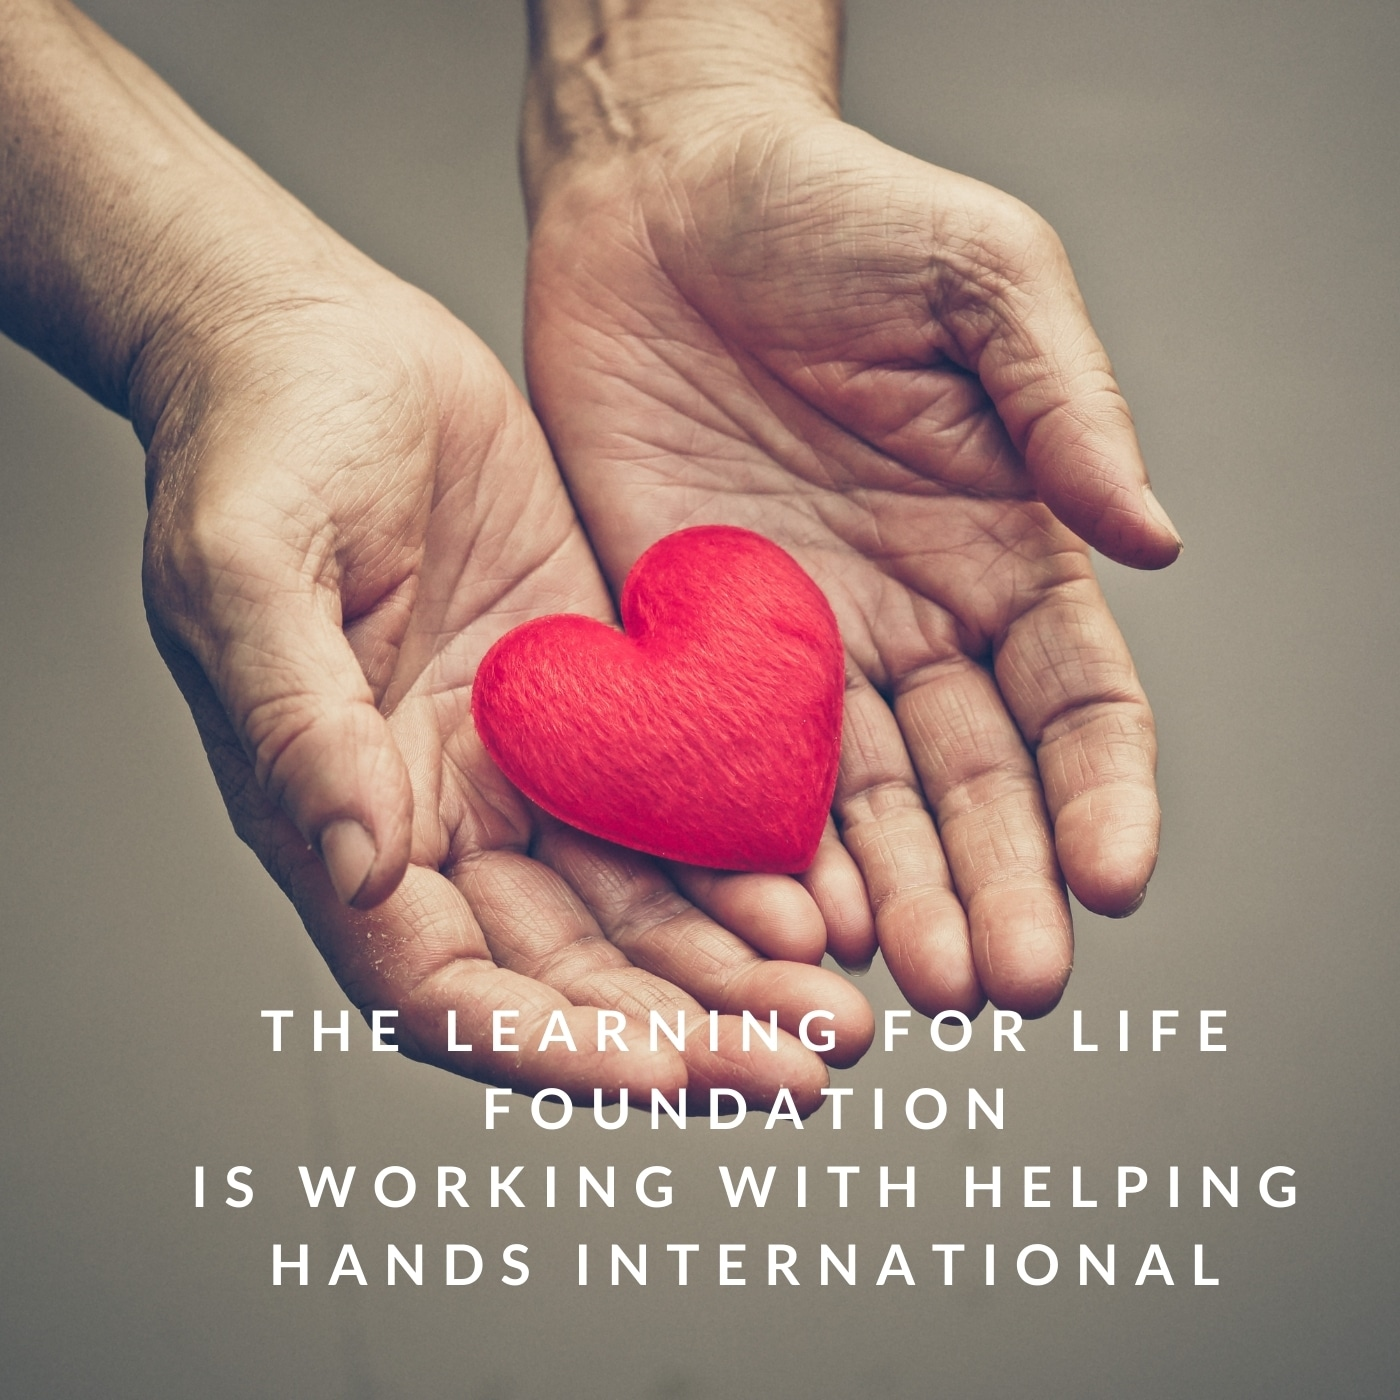 The Learning for Life Foundation is working with Helping Hands International to help gather supplies and much needed relief for the people of Haiti